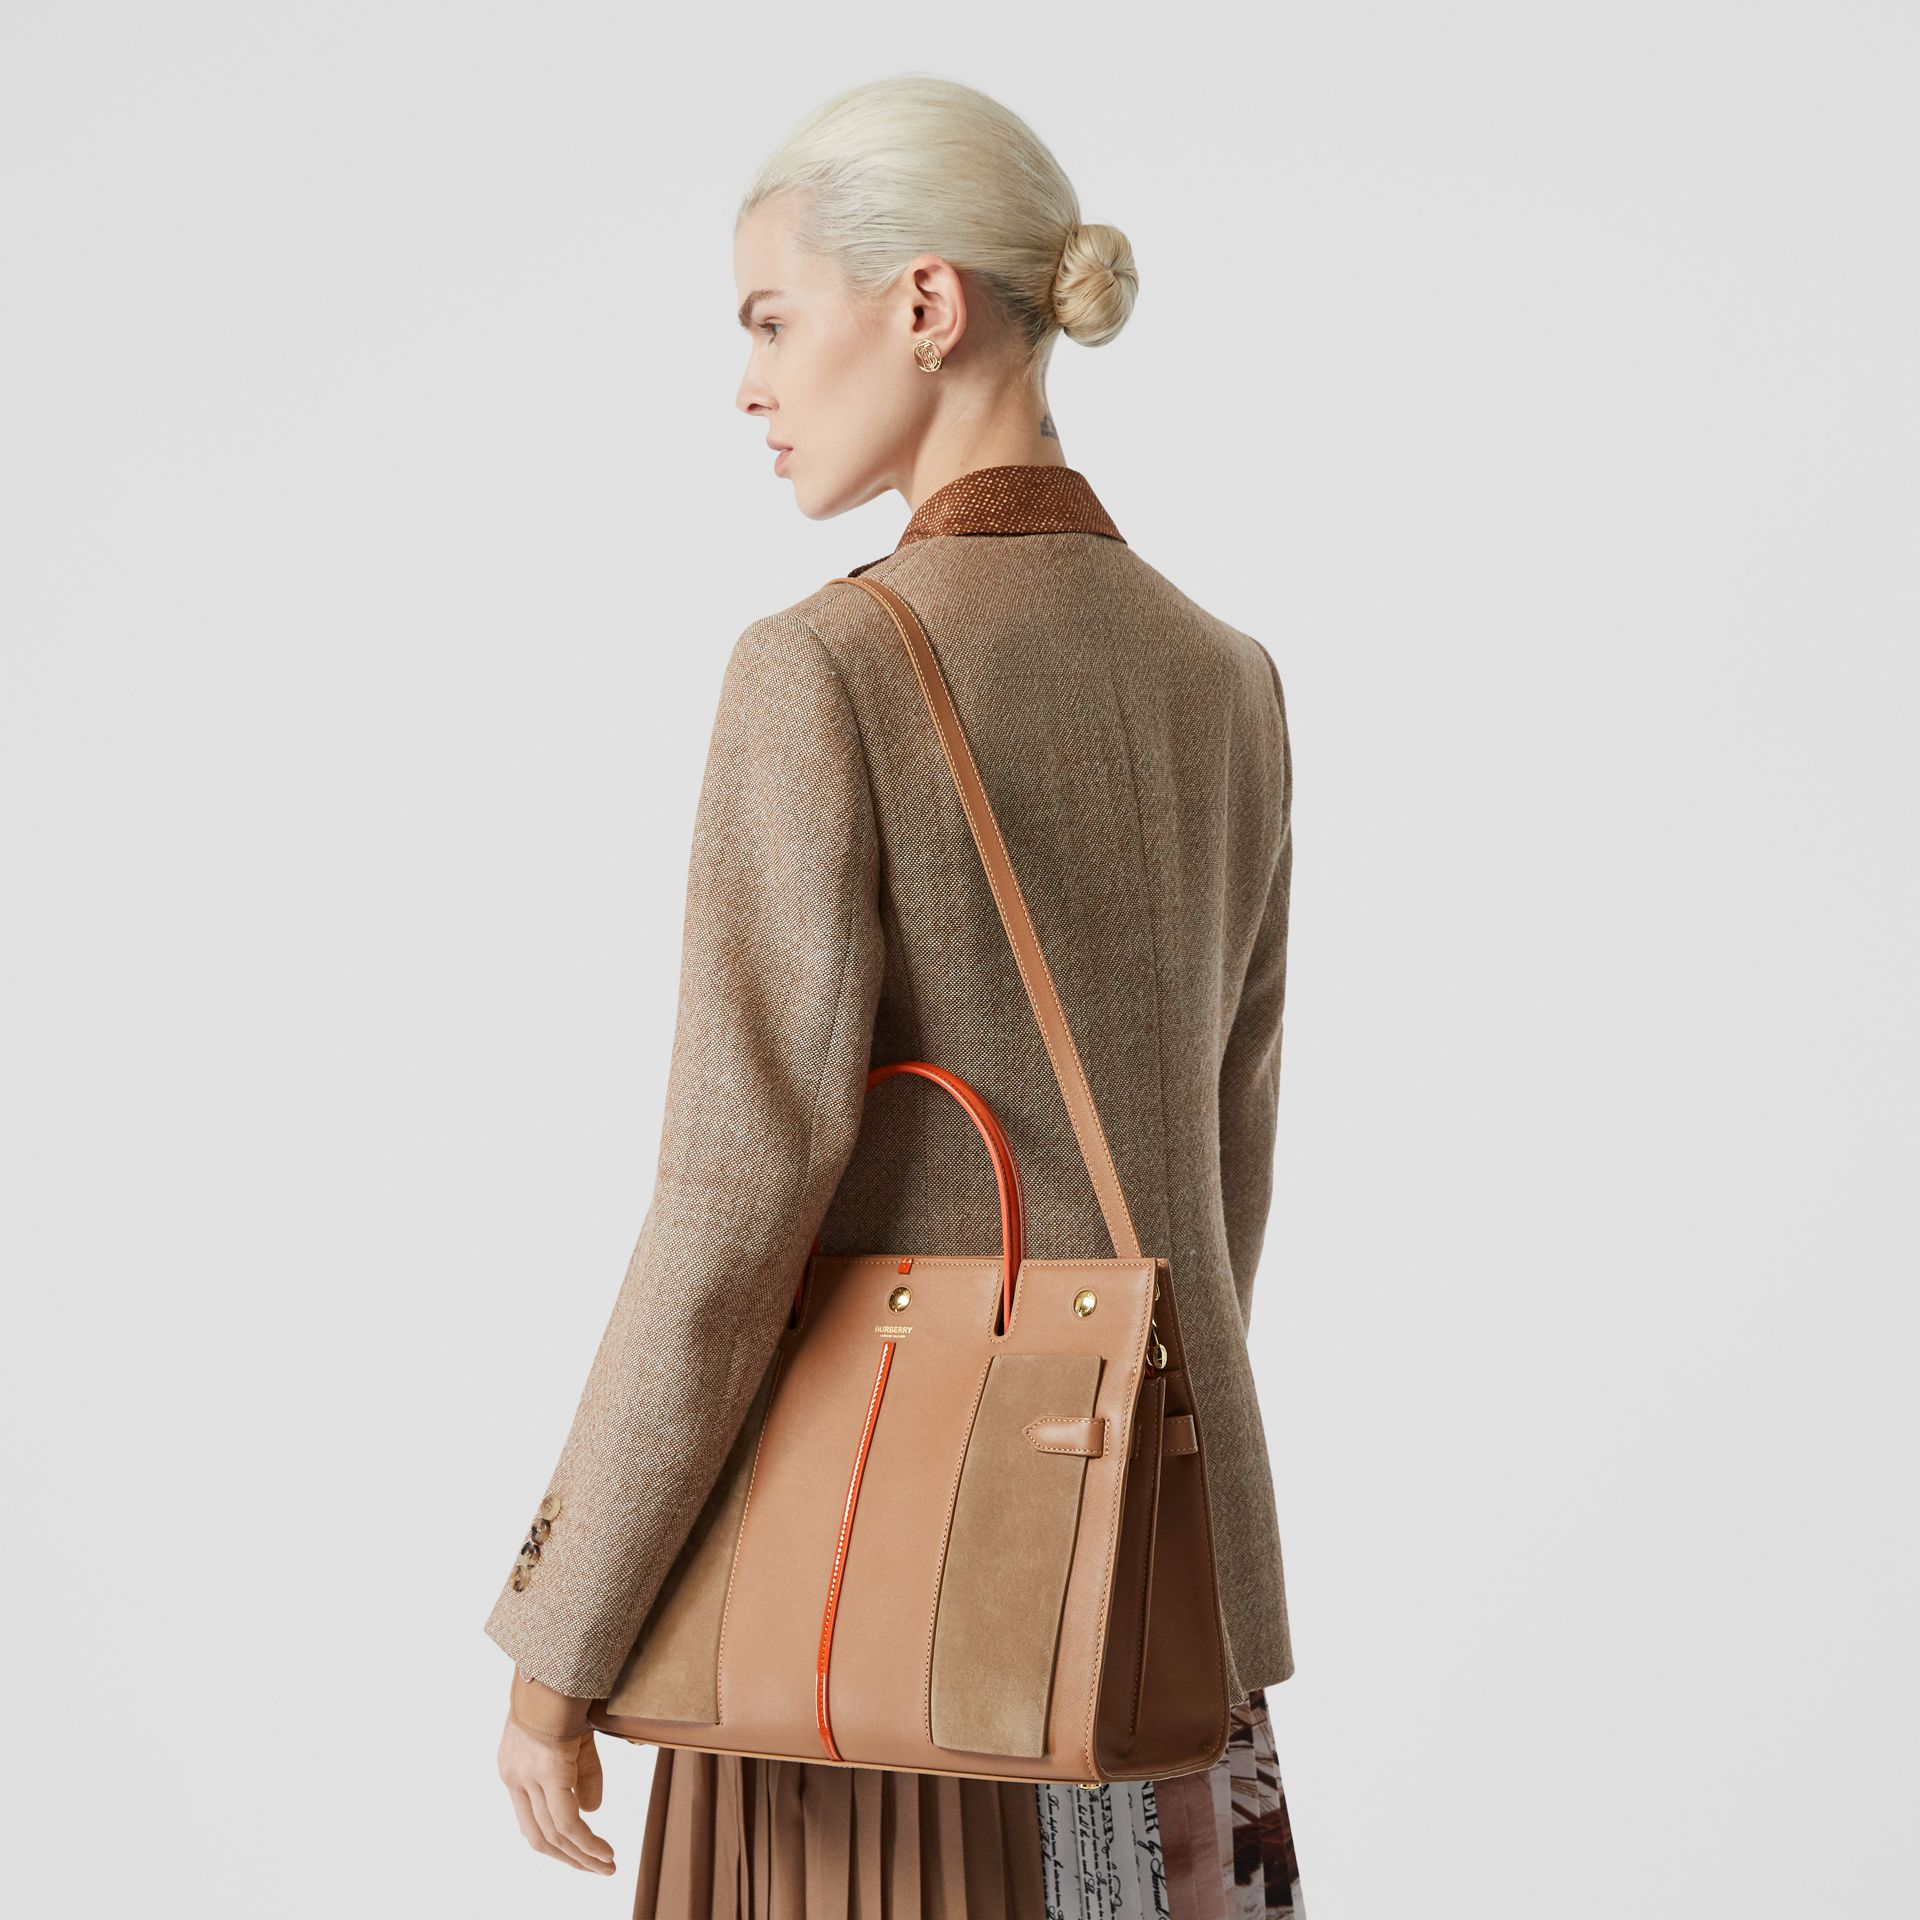 Medium Leather and Suede Title Bag in Warm Camel - Women | Burberry - gallery image 2